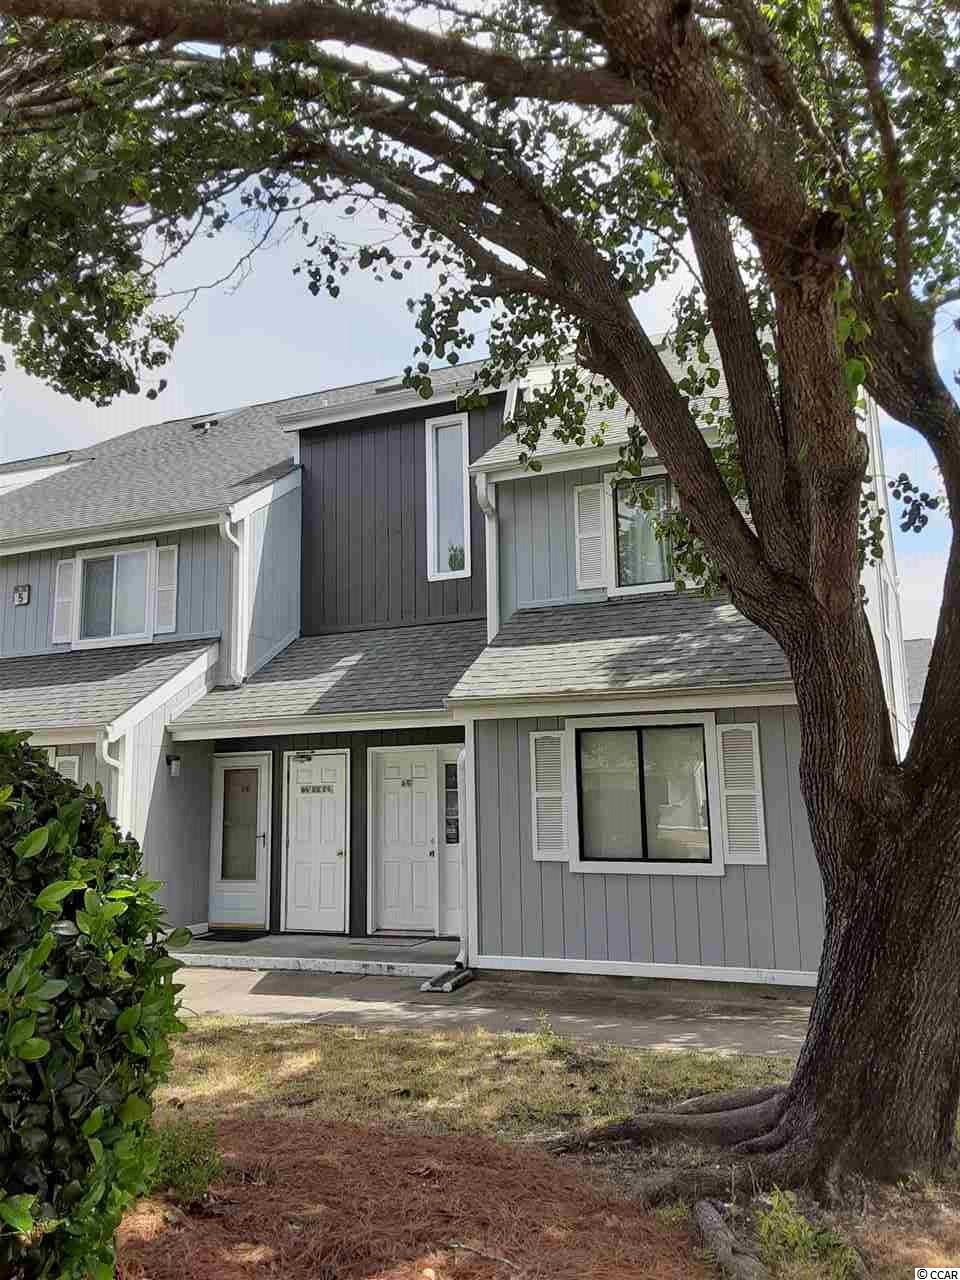 This 2 bedroom 2 bath loft unit is in the popular neighborhood of Golf Colony and close to everything.  Across from McLeod Seacoast hospital, with easy access to shopping, golf and beaches.  The perfect place if you are looking for an investment, home away from home or full time residence.  The balcony off the living room has a view of the pool and a great way to relax at the end the day.  The 2nd bedroom loft is perfect for an office, a guest room or place for the kids.